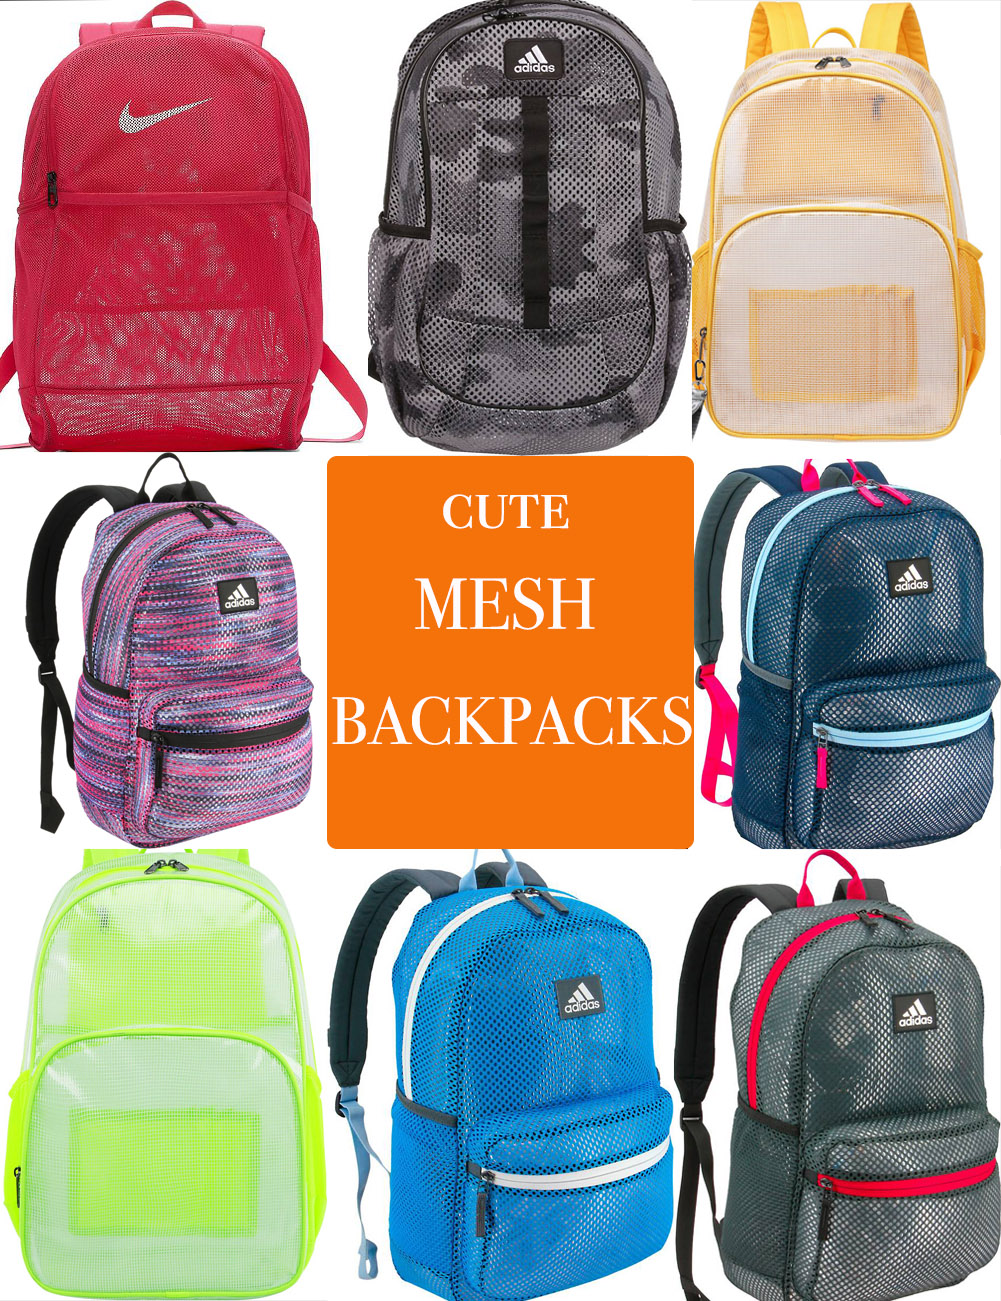 meshbackpacks.jpg